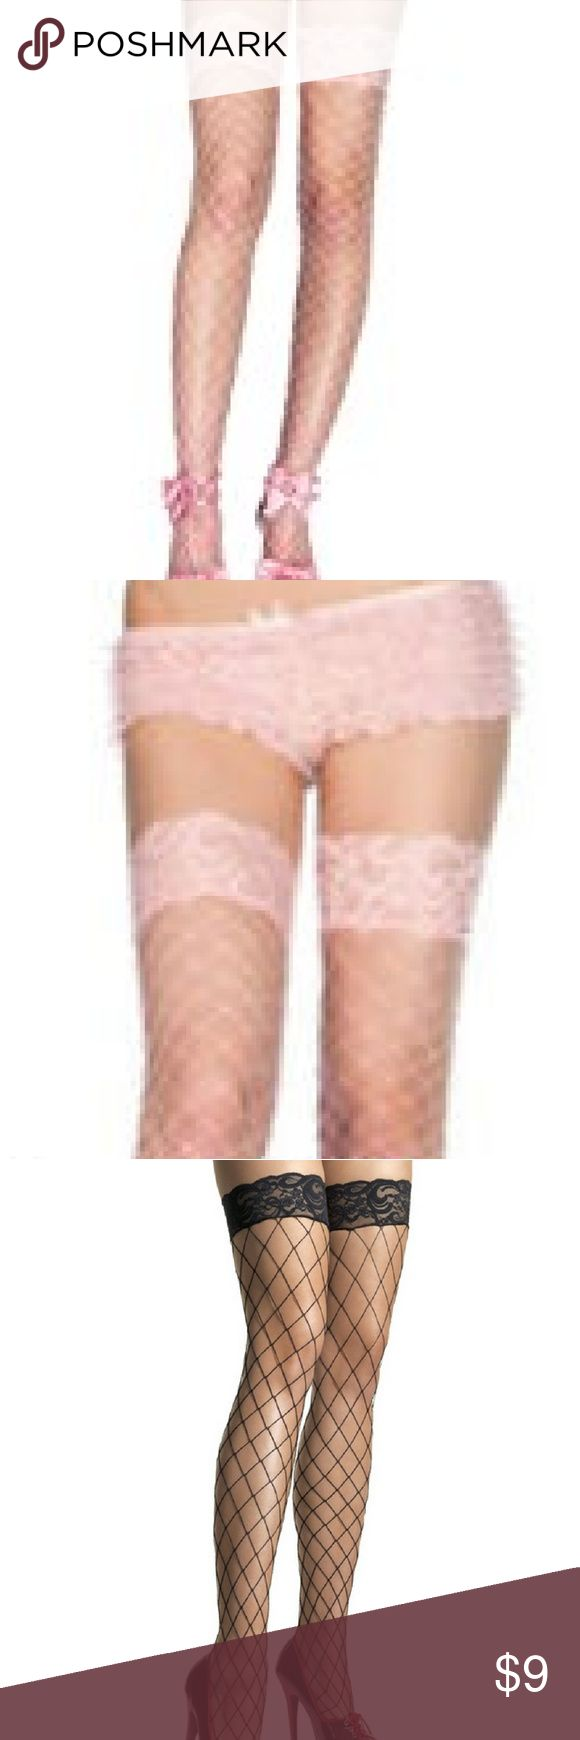 Pink lace top fence net stockings Popular whale net stockings with a lace top.  Proper big fishnets in a choice of three colours, complete with a lace top. Please note: they may look like hold-ups in the picture but the tops are only lightly elasticated so we'd recommend a suspender belt.  One size fits most  90-160 lbs Soft pink Leg Avenue Accessories Hosiery & Socks